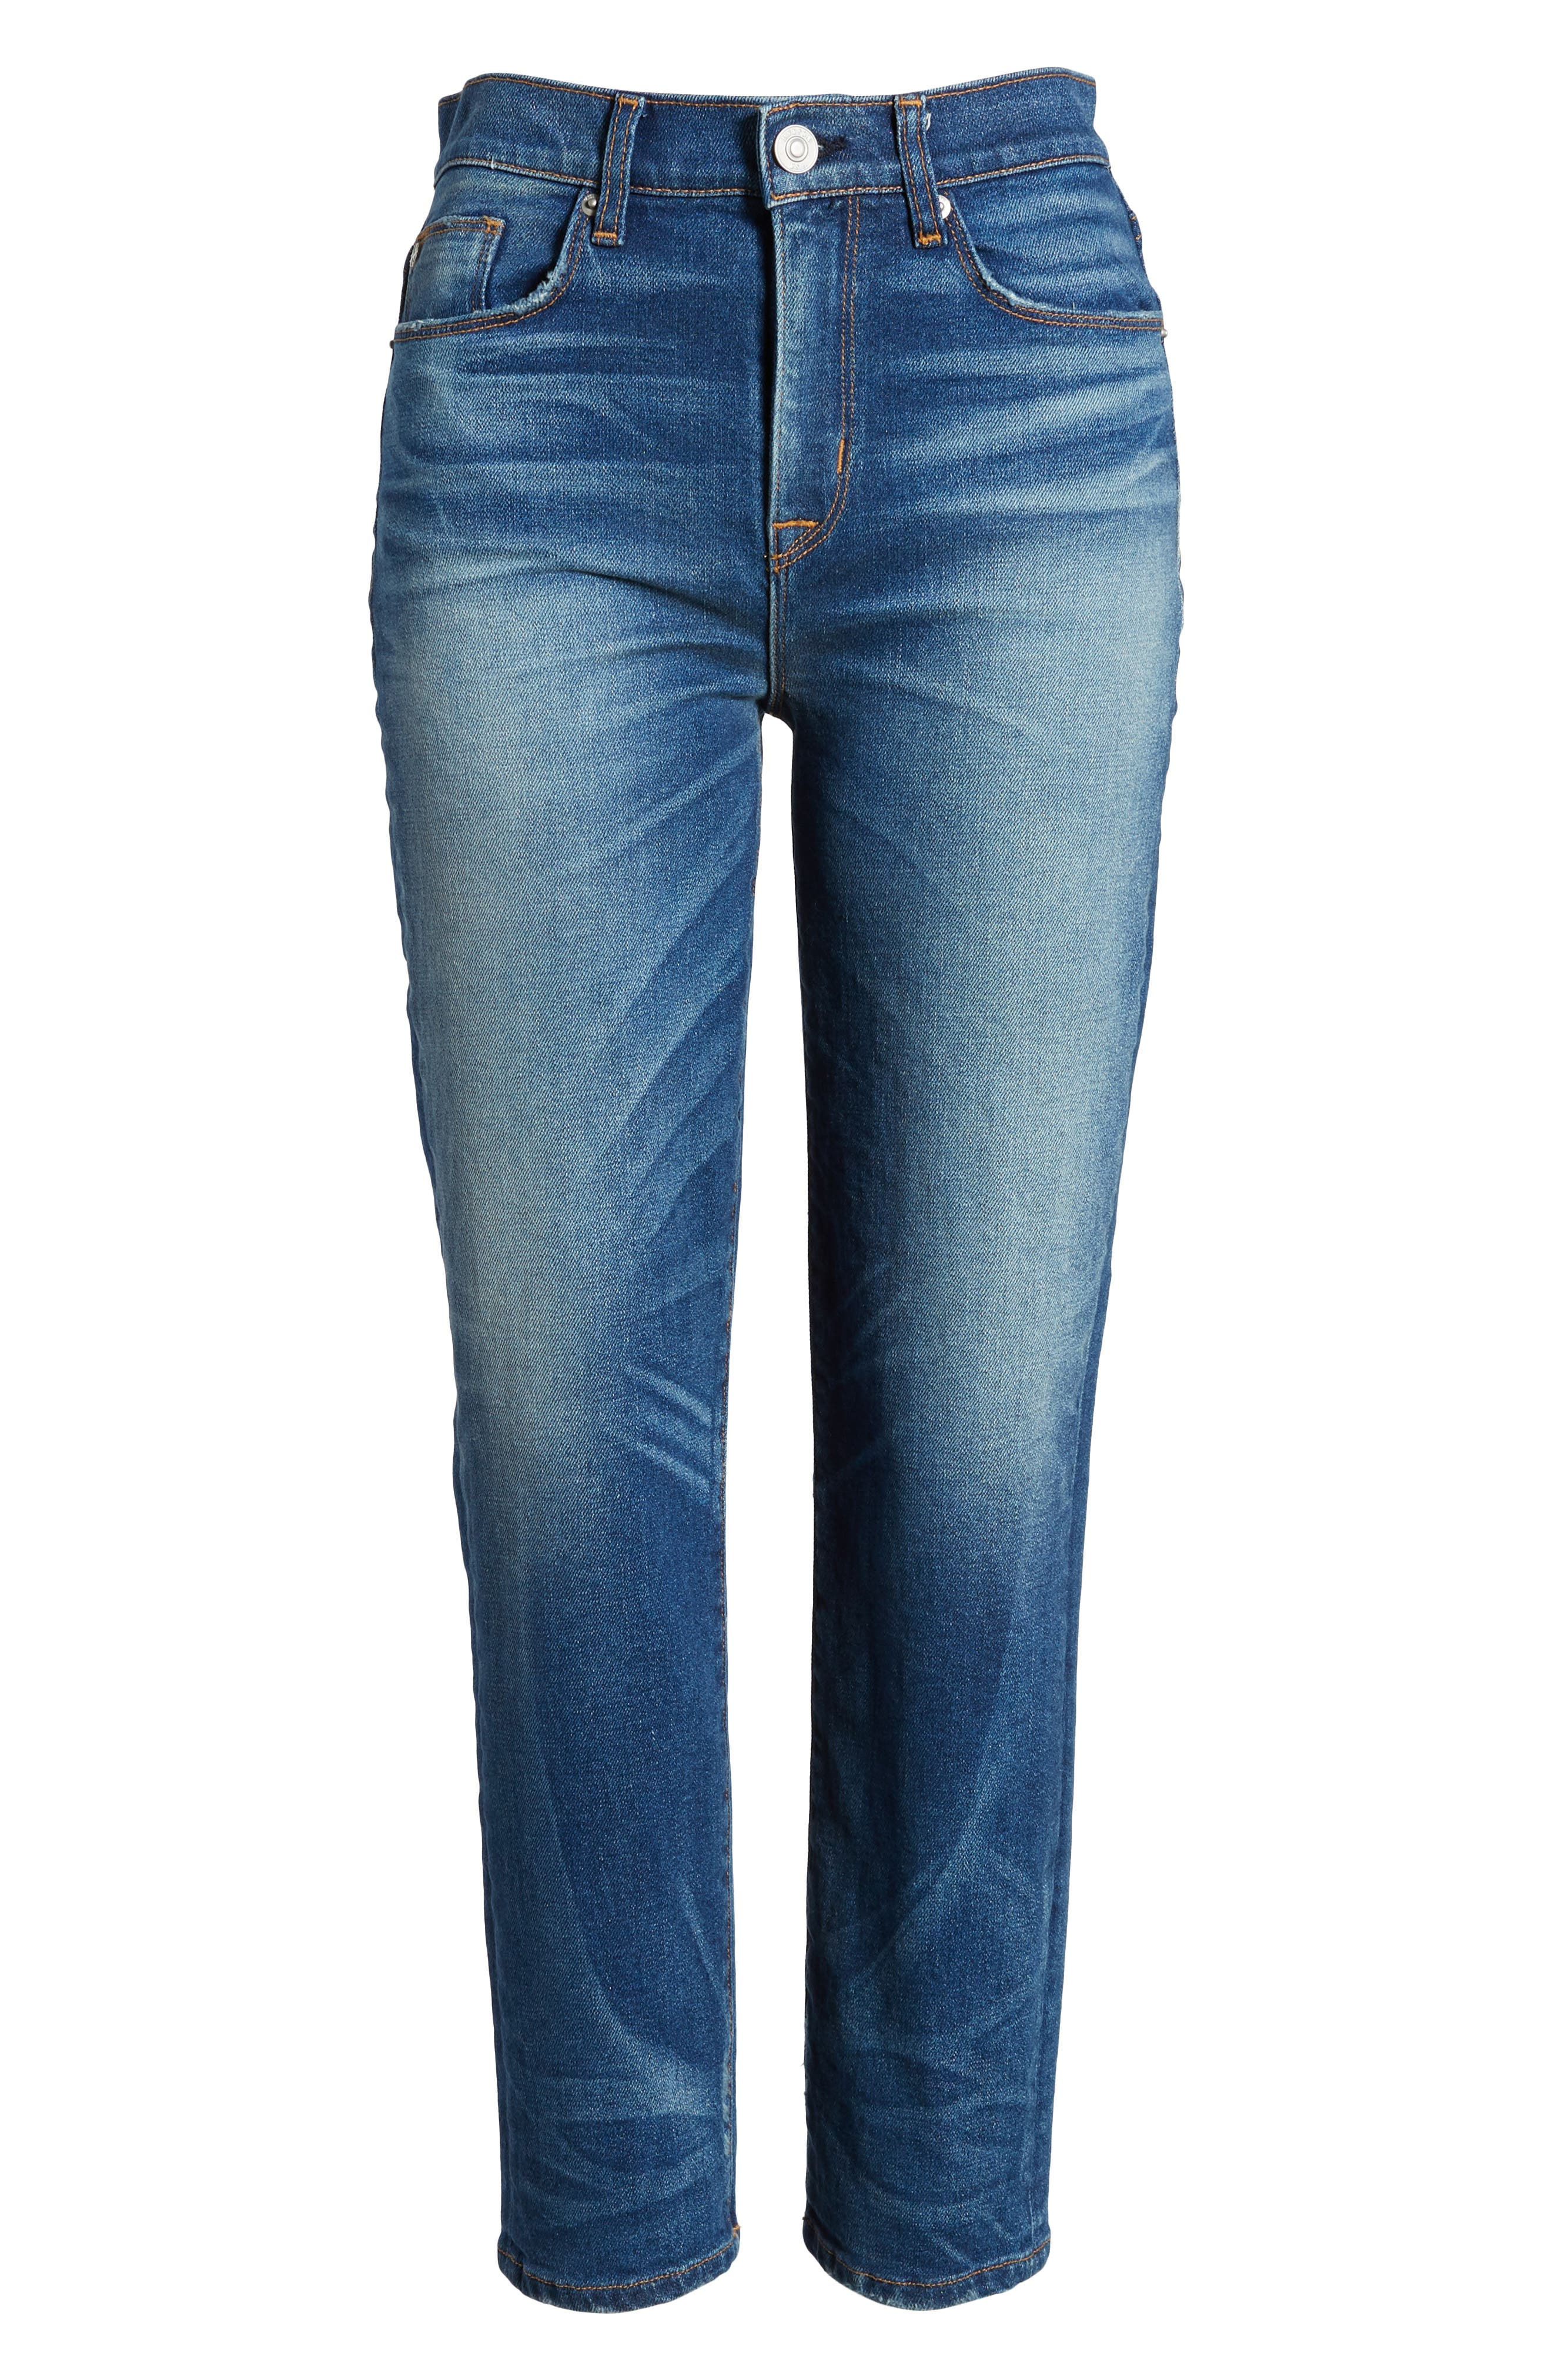 Zoeey High Waist Crop Straight Leg Jeans,                             Alternate thumbnail 7, color,                             Undenied